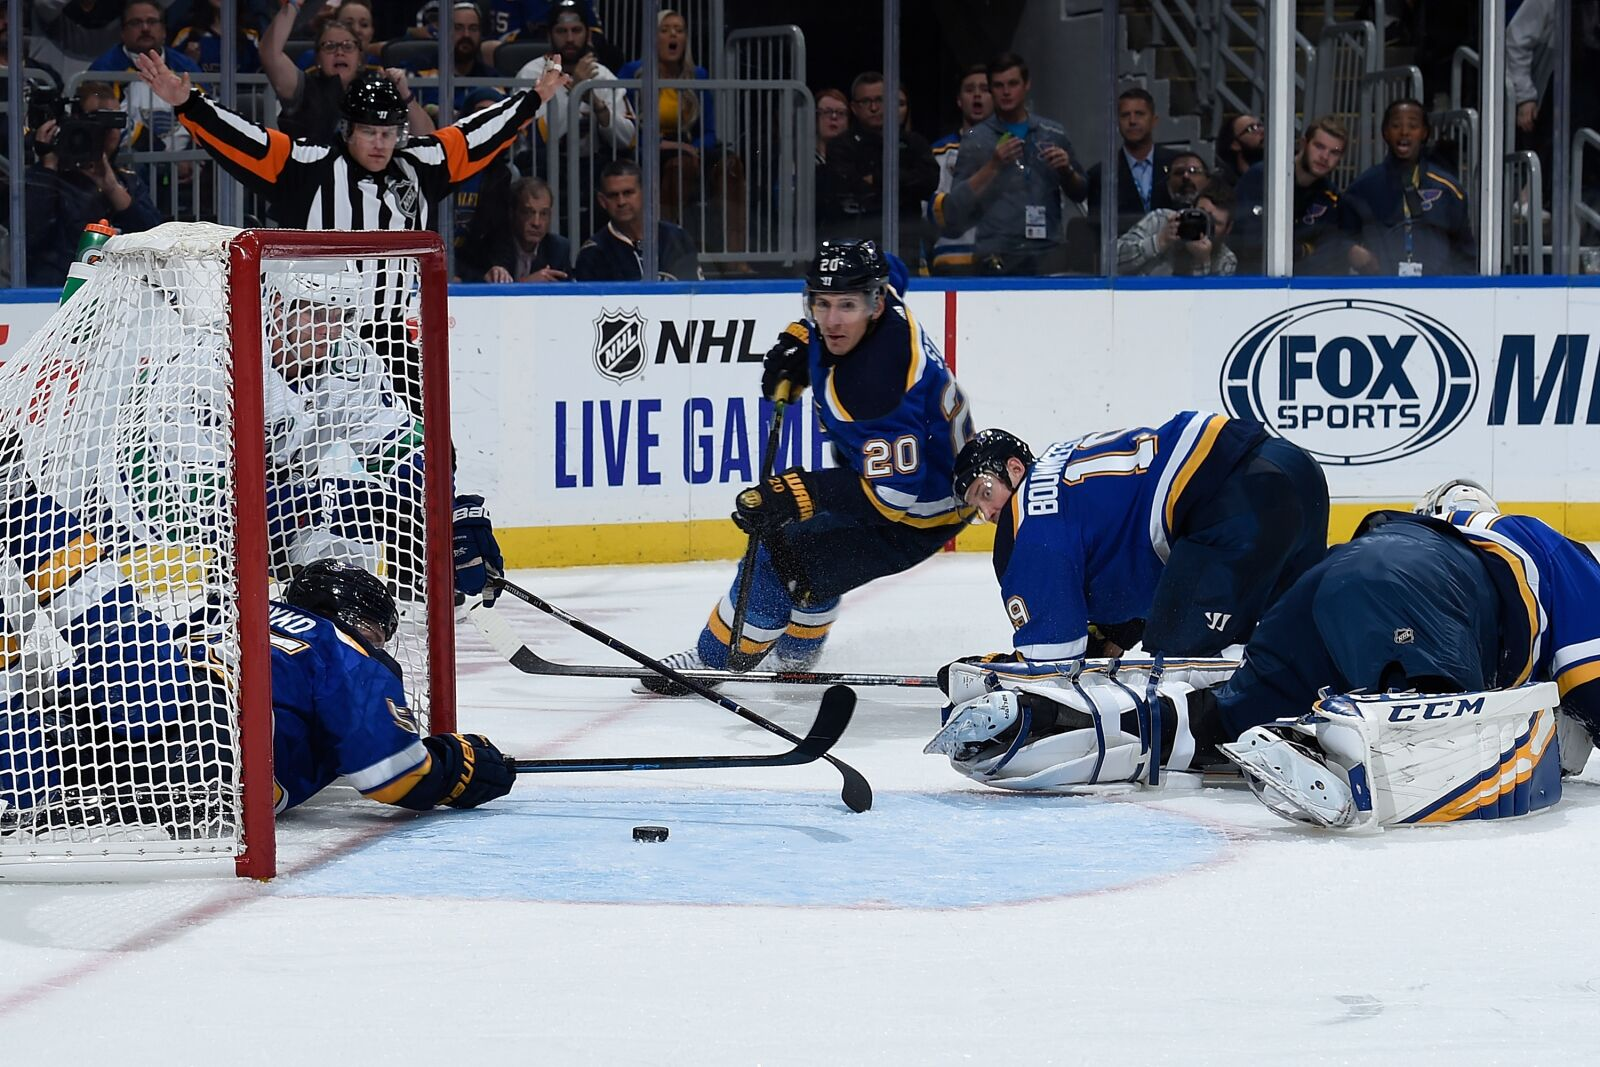 St. Louis Blues: The Blues Vs. Canucks Report Card